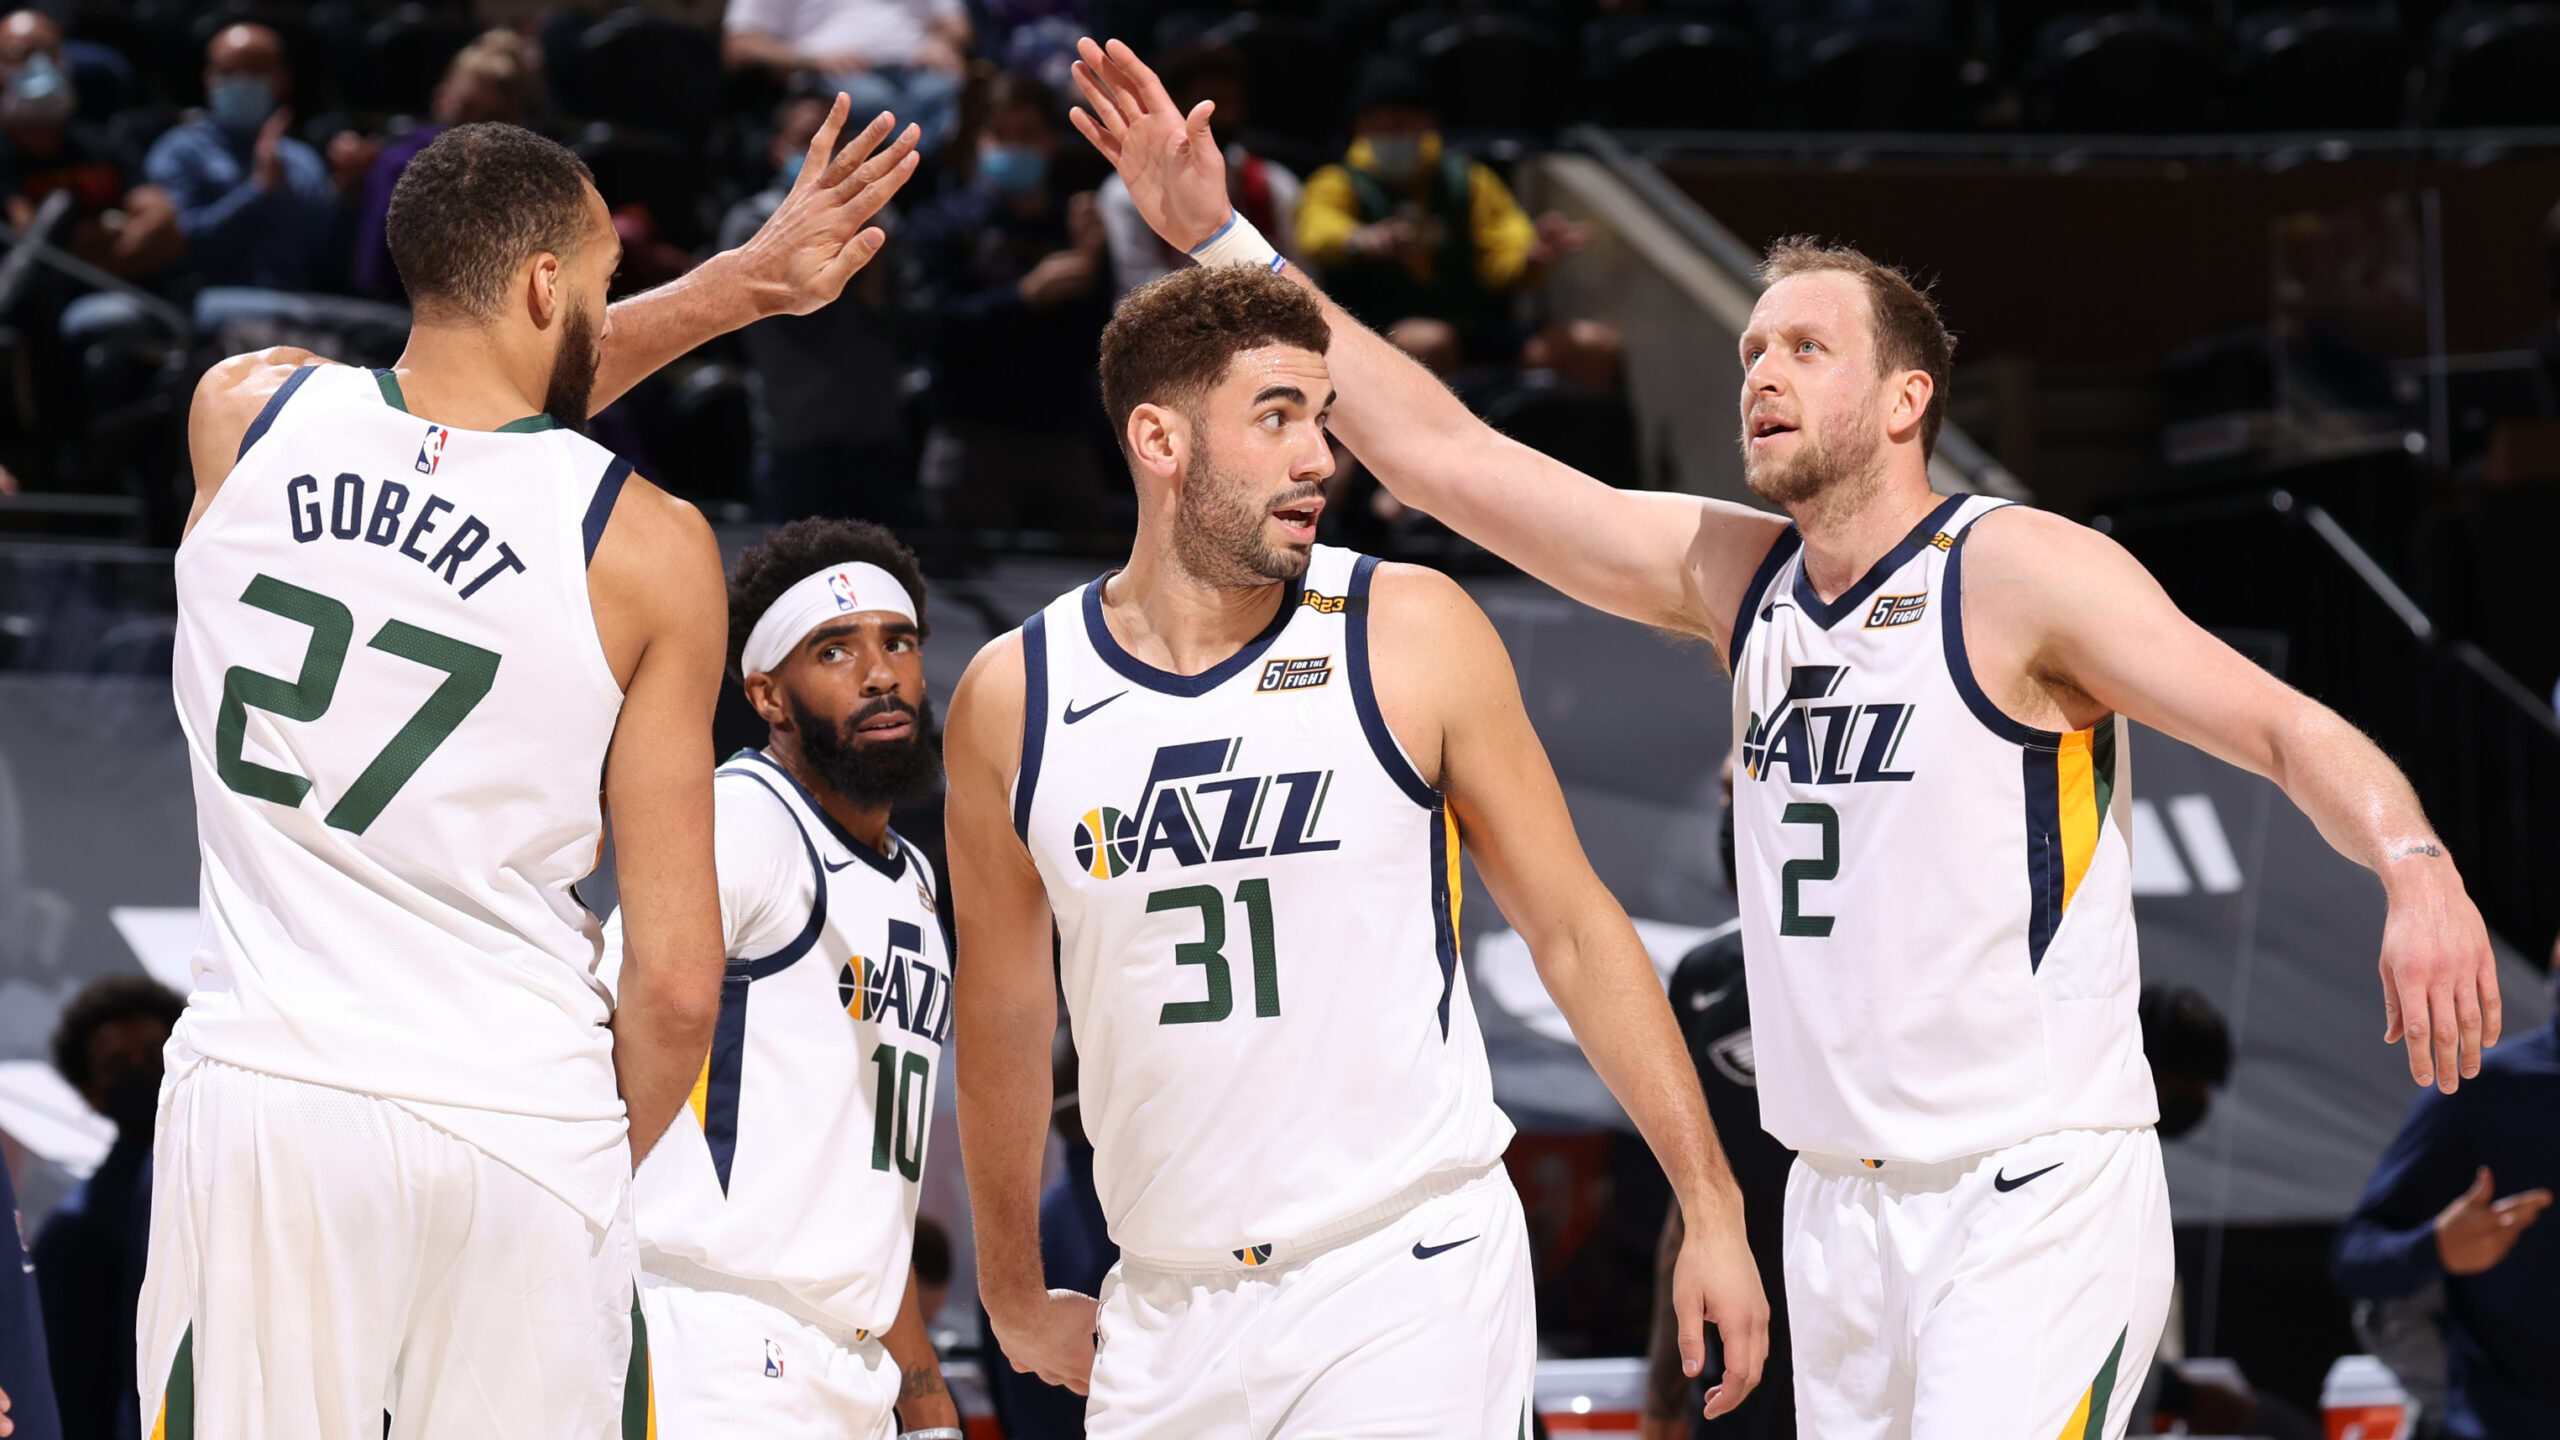 Jazz, who 'have all the pieces', streak to double-digit wins